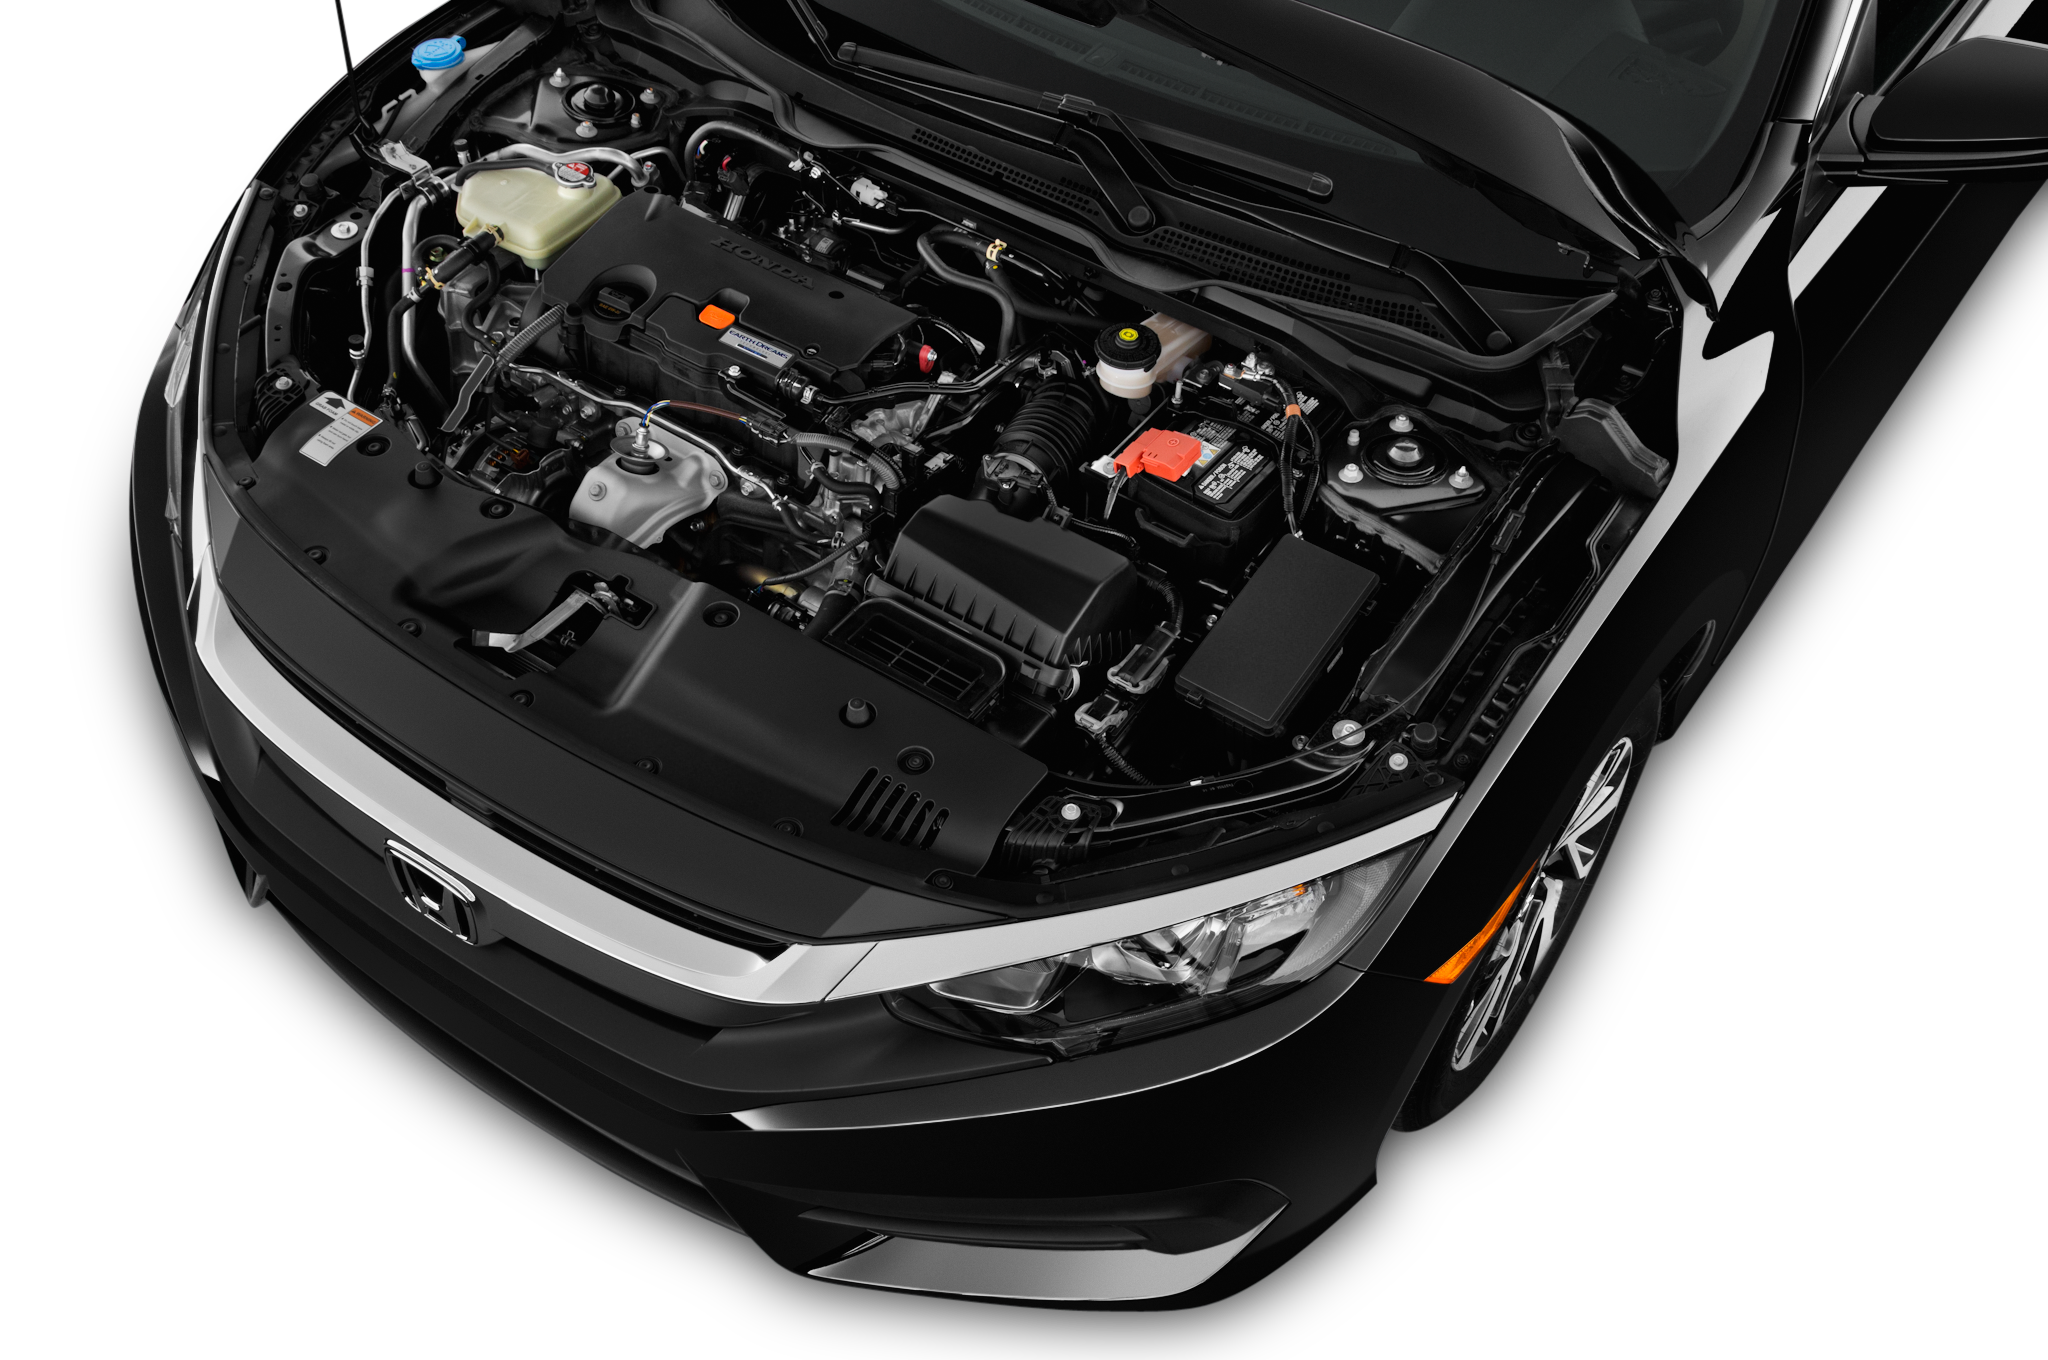 Will The Honda Civic Si Get A Detuned 230